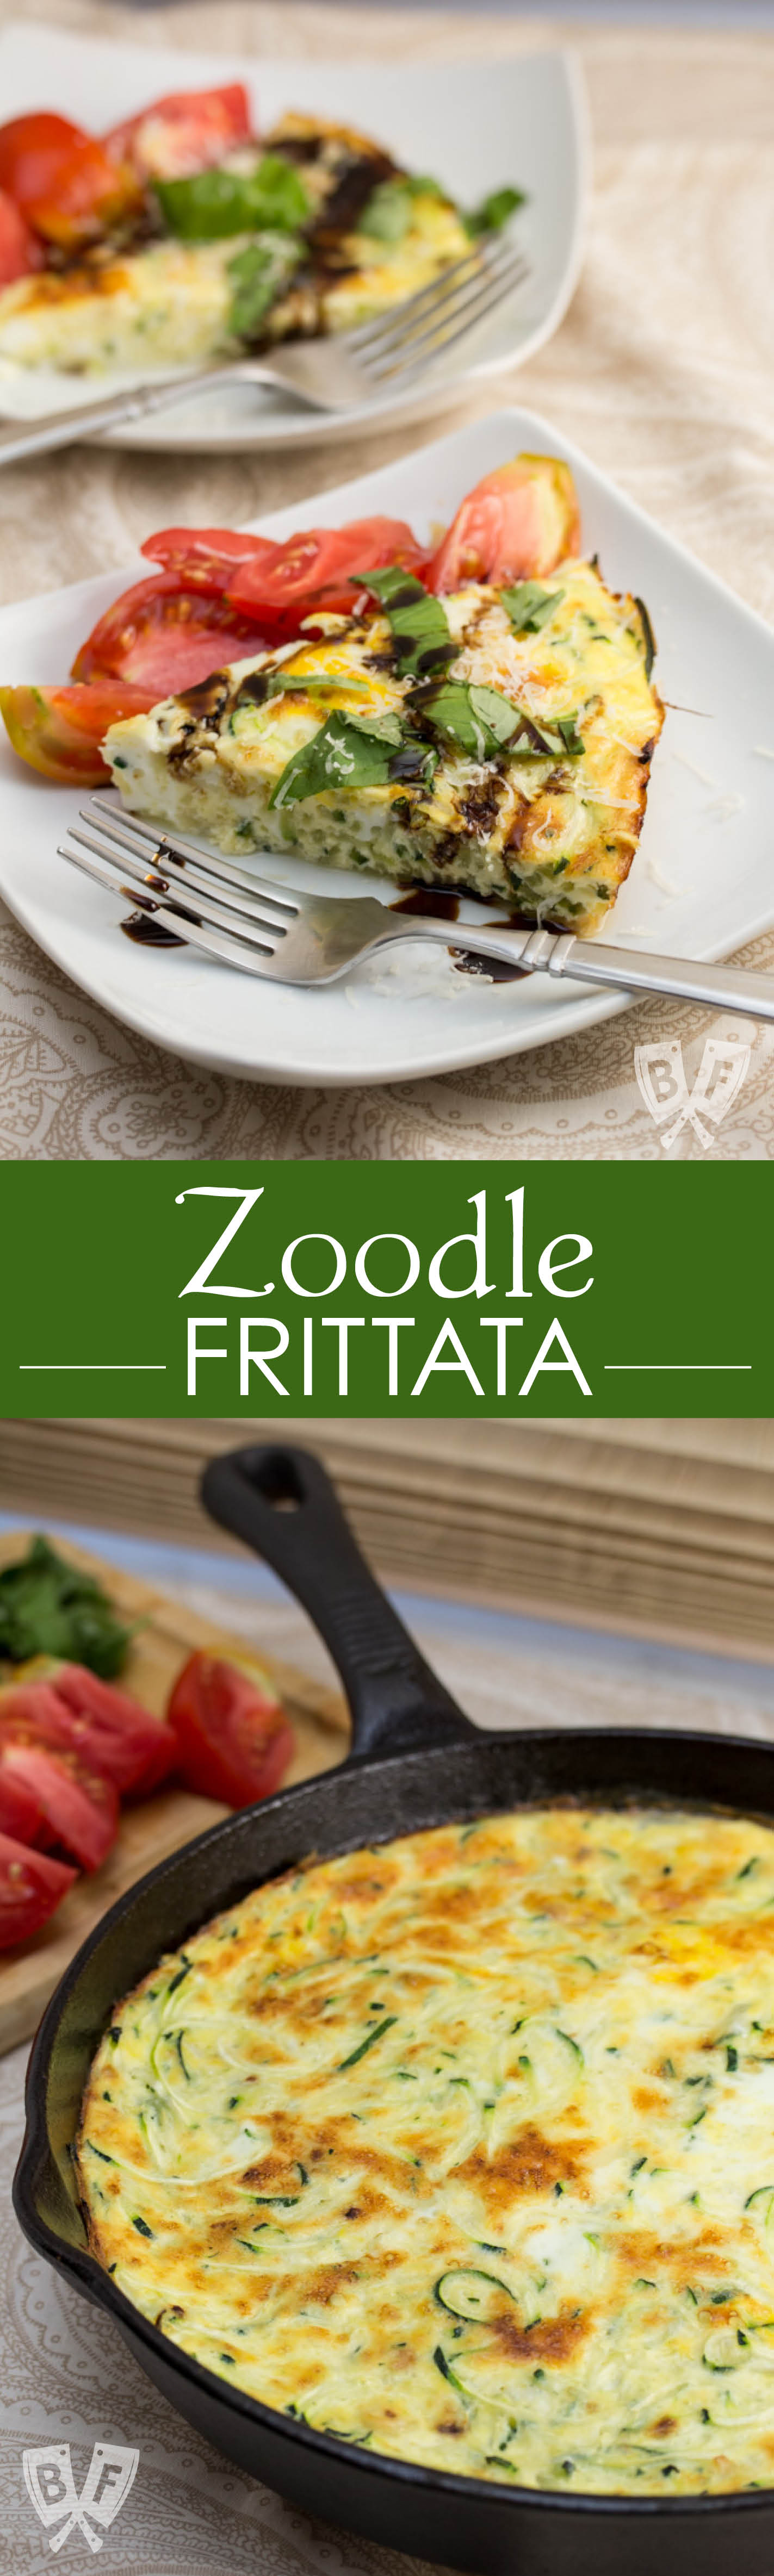 Zoodle Frittata: A drizzle of aged balsamic, grated Parmesan, garden fresh tomatoes and basil adorn this deliciously elegant yet simple breakfast dish.